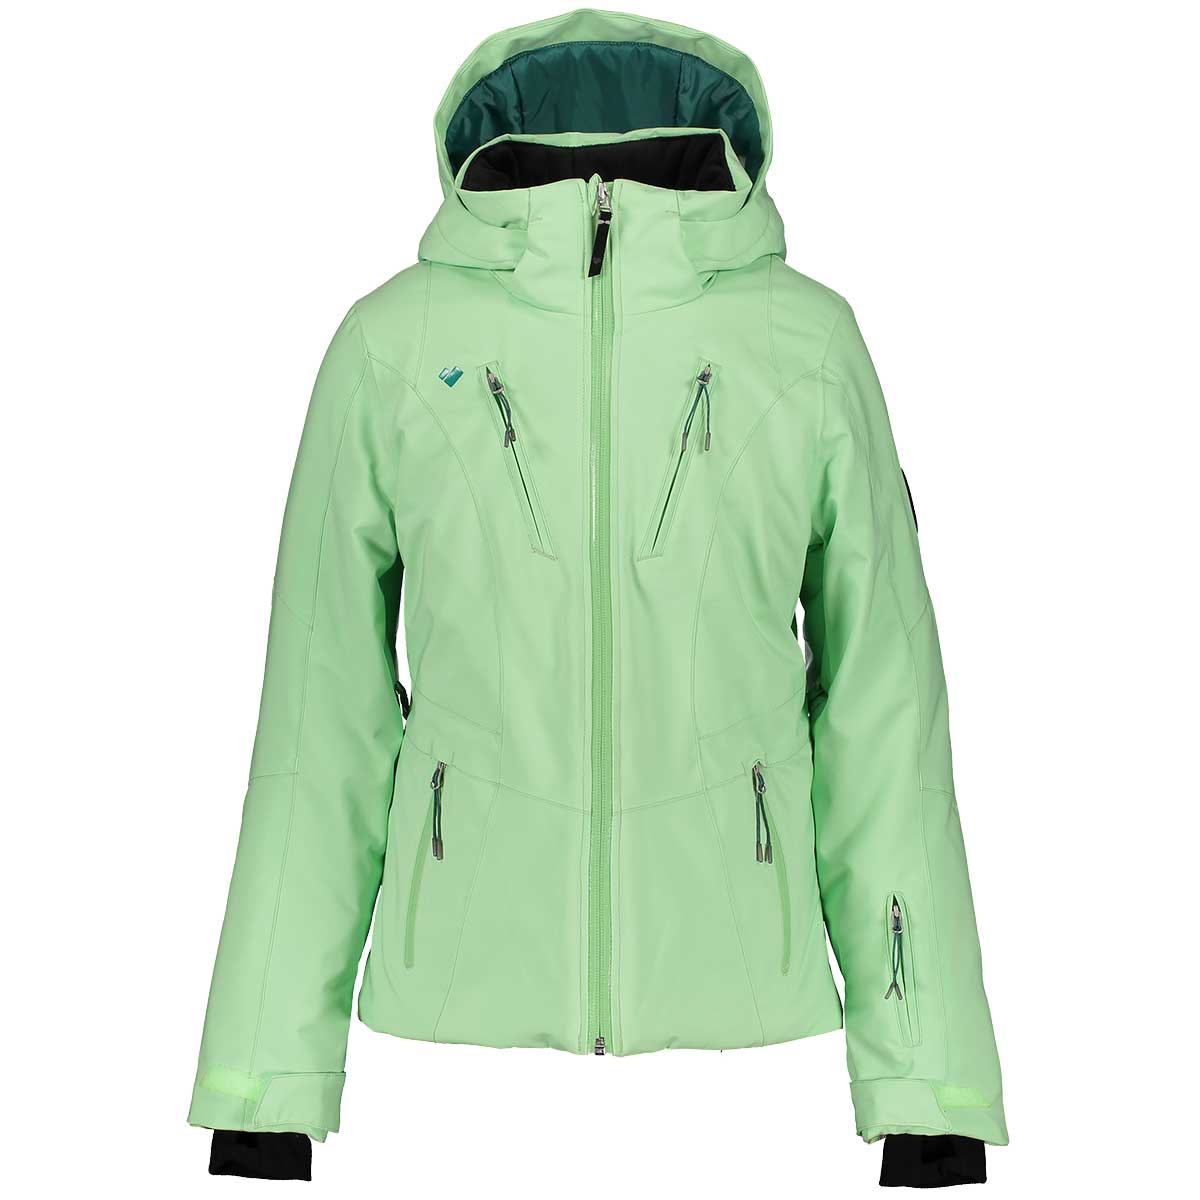 Obermeyer teen girls' Leia Jacket in Neo Mint front view